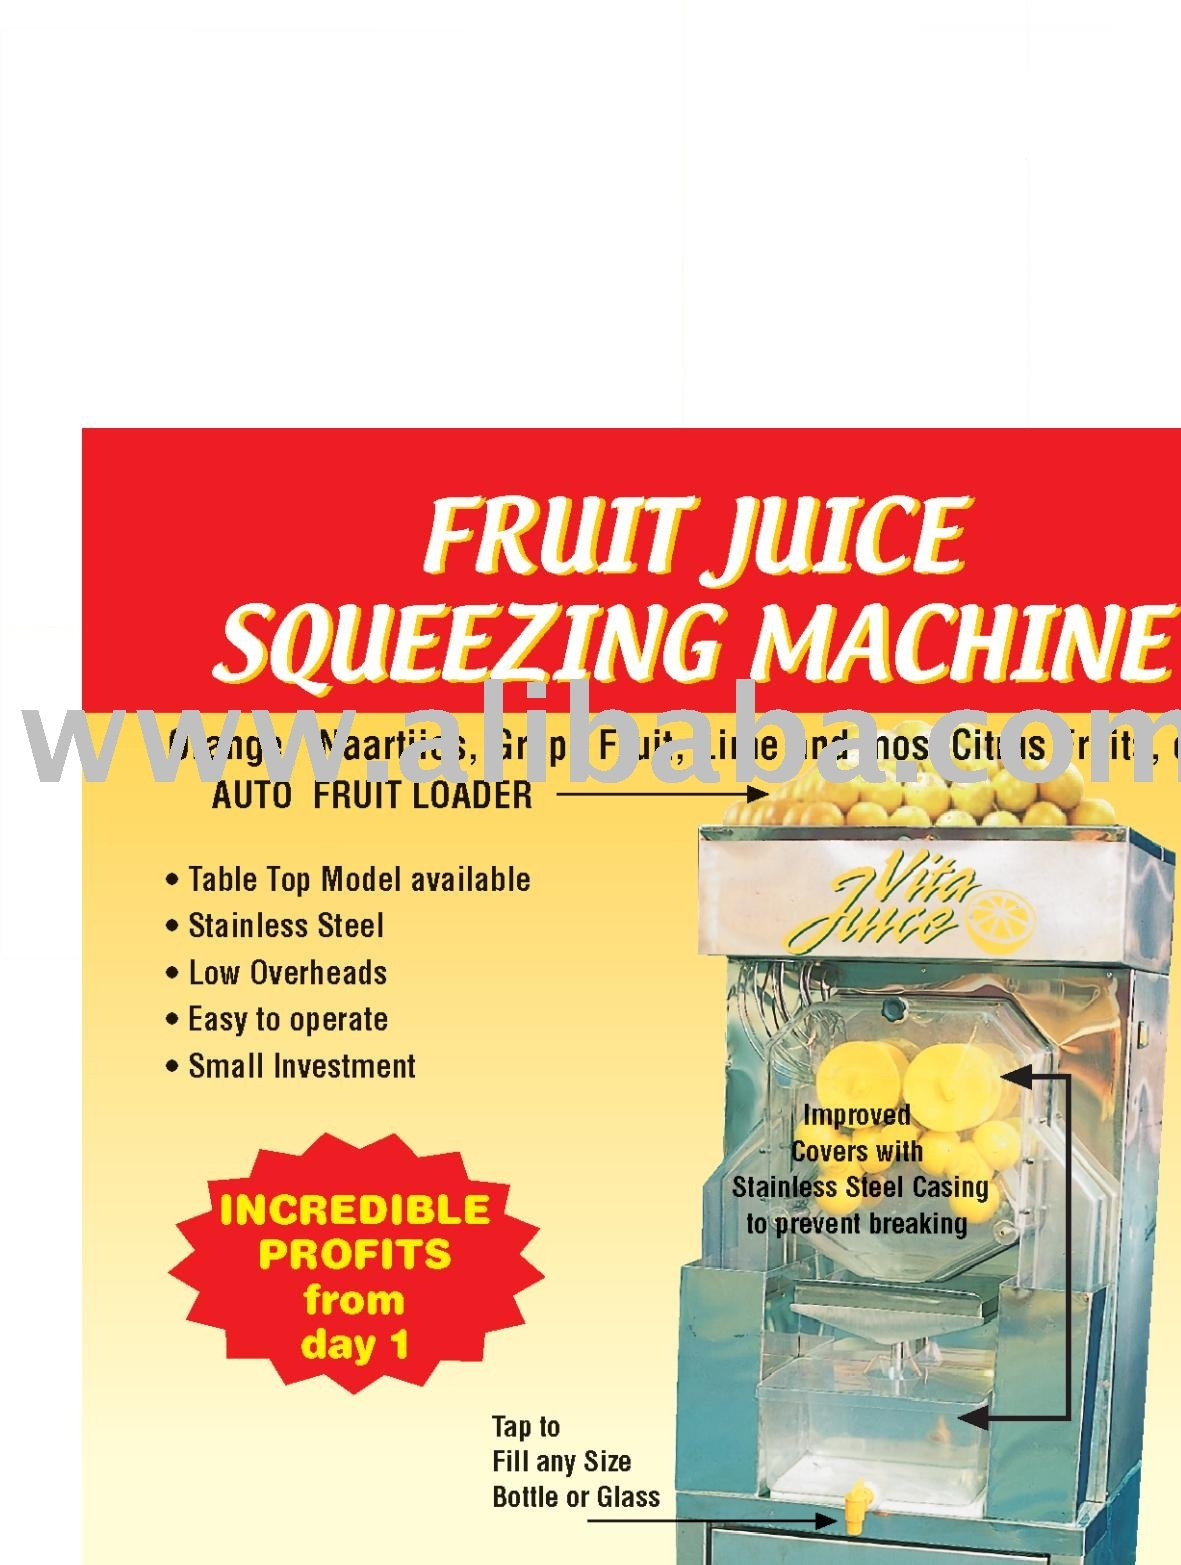 Fruit Juice Squeezing Machine